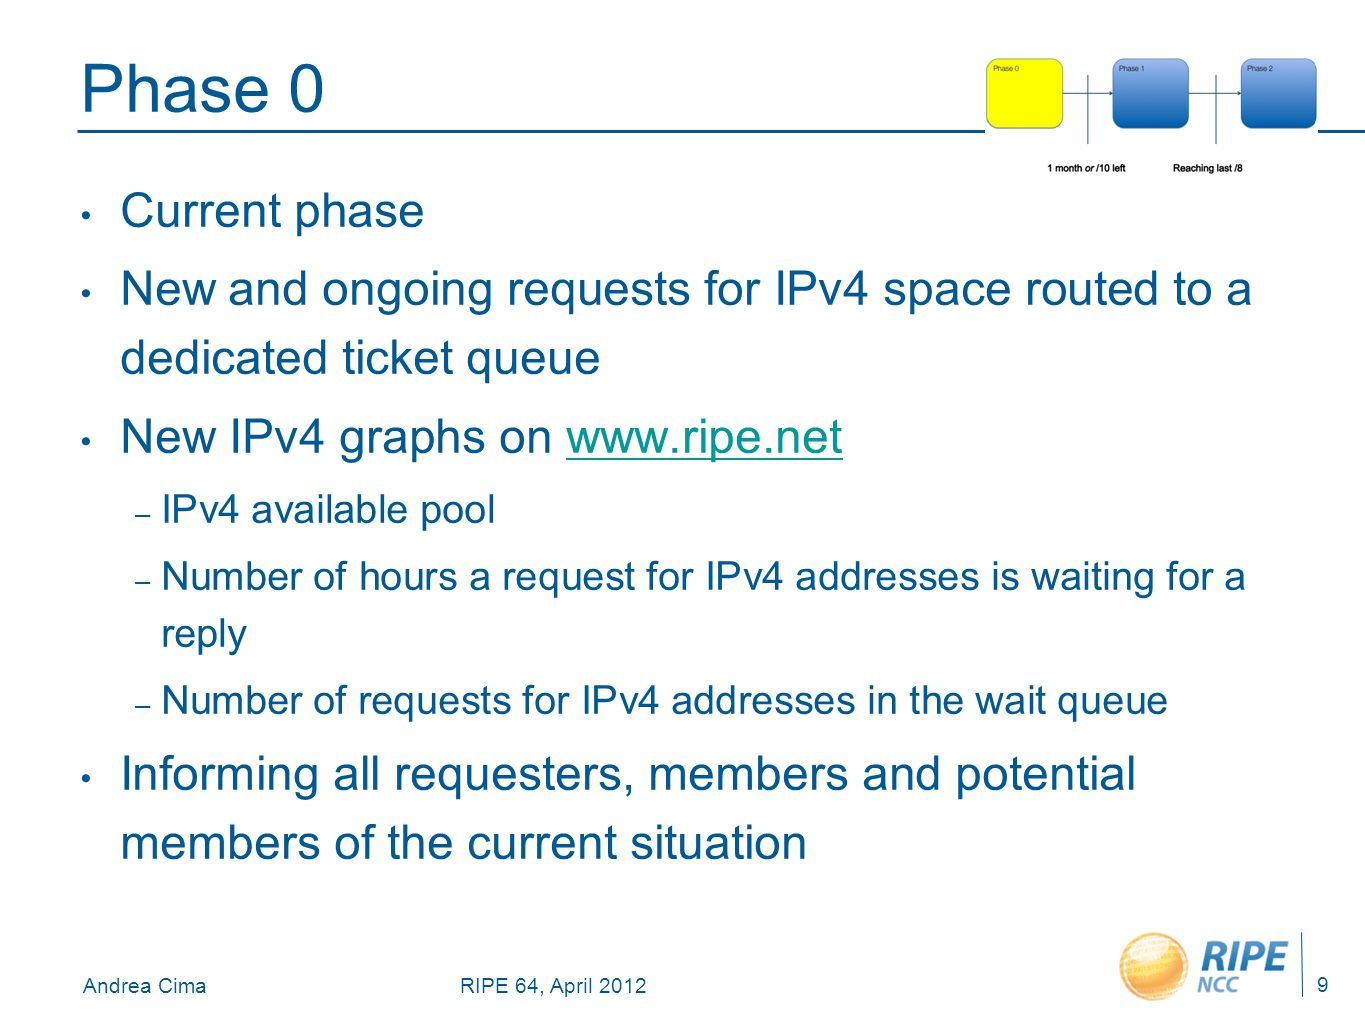 Andrea CimaRIPE 64, April 2012 Current phase New and ongoing requests for IPv4 space routed to a dedicated ticket queue New IPv4 graphs on www.ripe.netwww.ripe.net – IPv4 available pool – Number of hours a request for IPv4 addresses is waiting for a reply – Number of requests for IPv4 addresses in the wait queue Informing all requesters, members and potential members of the current situation 9 Phase 0